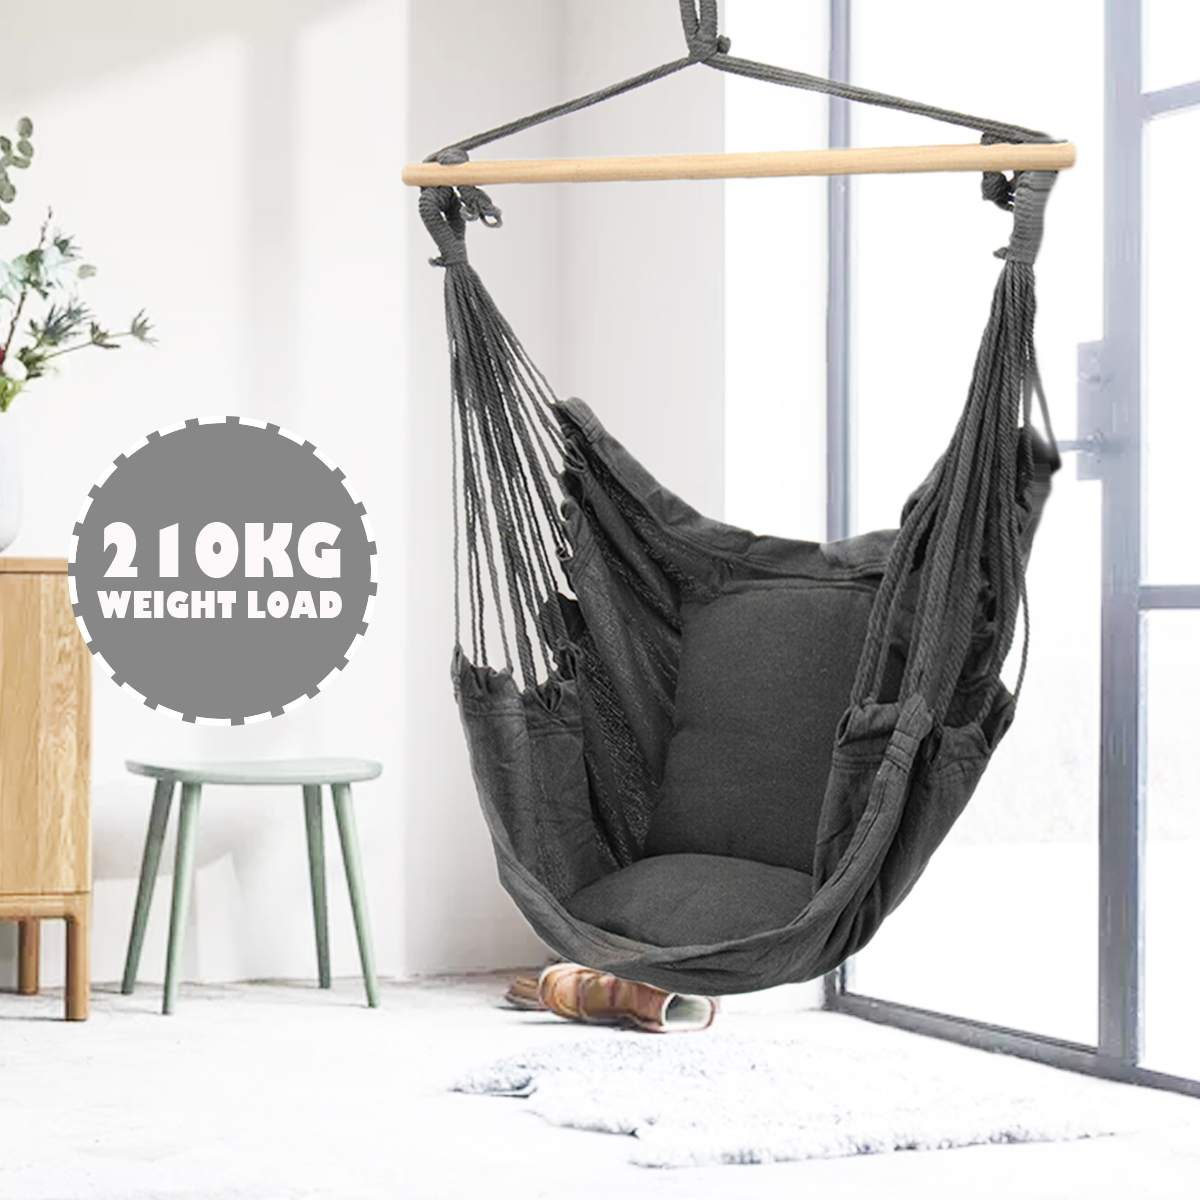 Hammock Chair Outdoor Indoor Dormitory Bedroom Yard For Child Adult Swinging Hanging Single Safety Chair Hammock